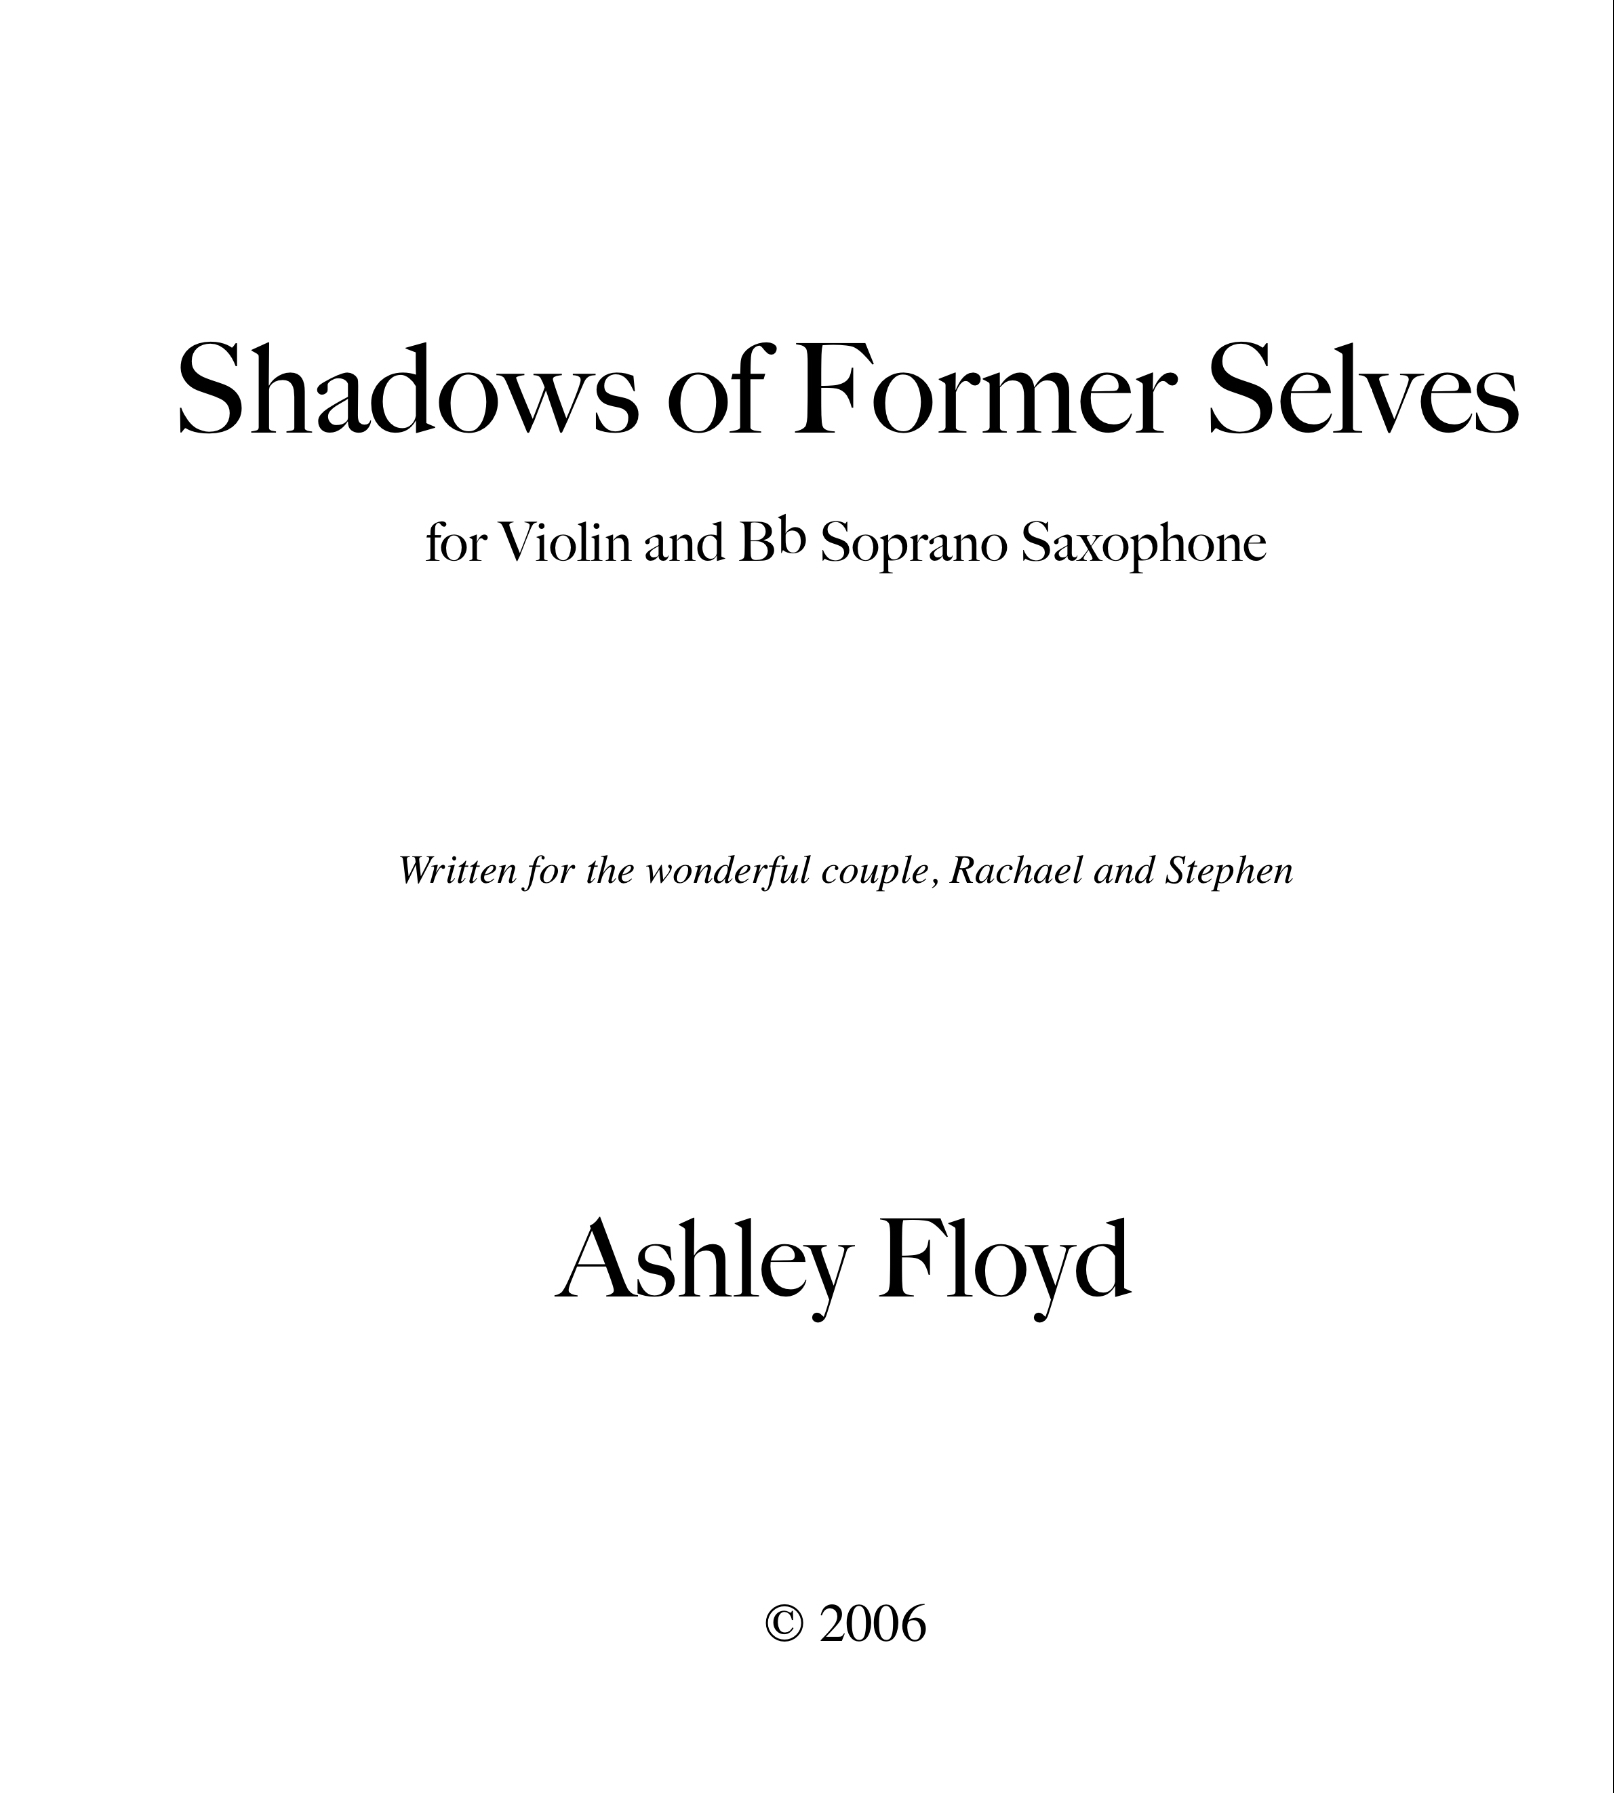 Shadows Of Former Selves  by Ashley Floyd